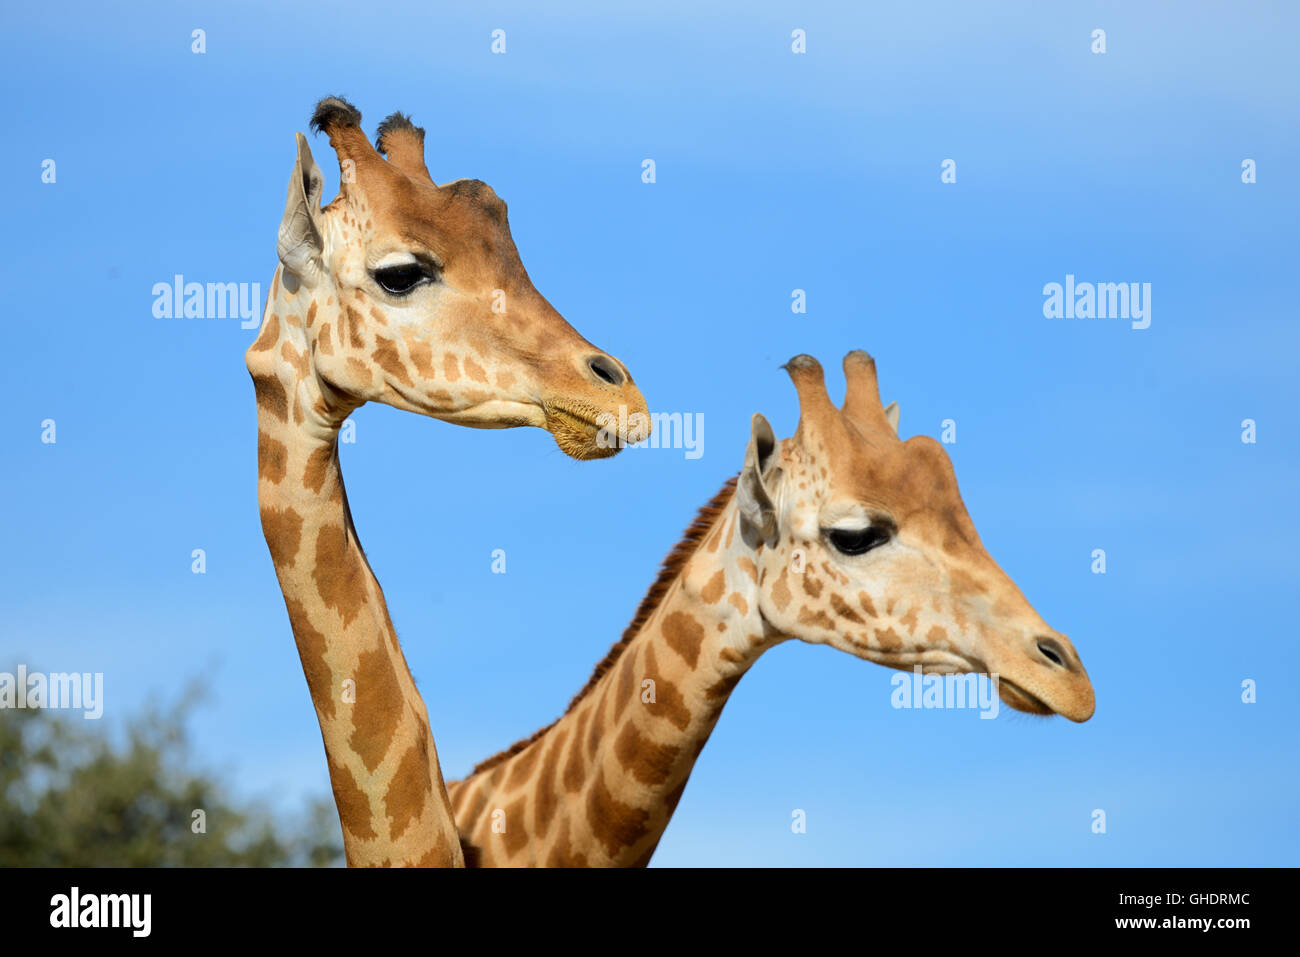 Pair of Reticulated Giraffes or Somali Giraffes, Giraffa camelopardalis reticulata - Stock Image